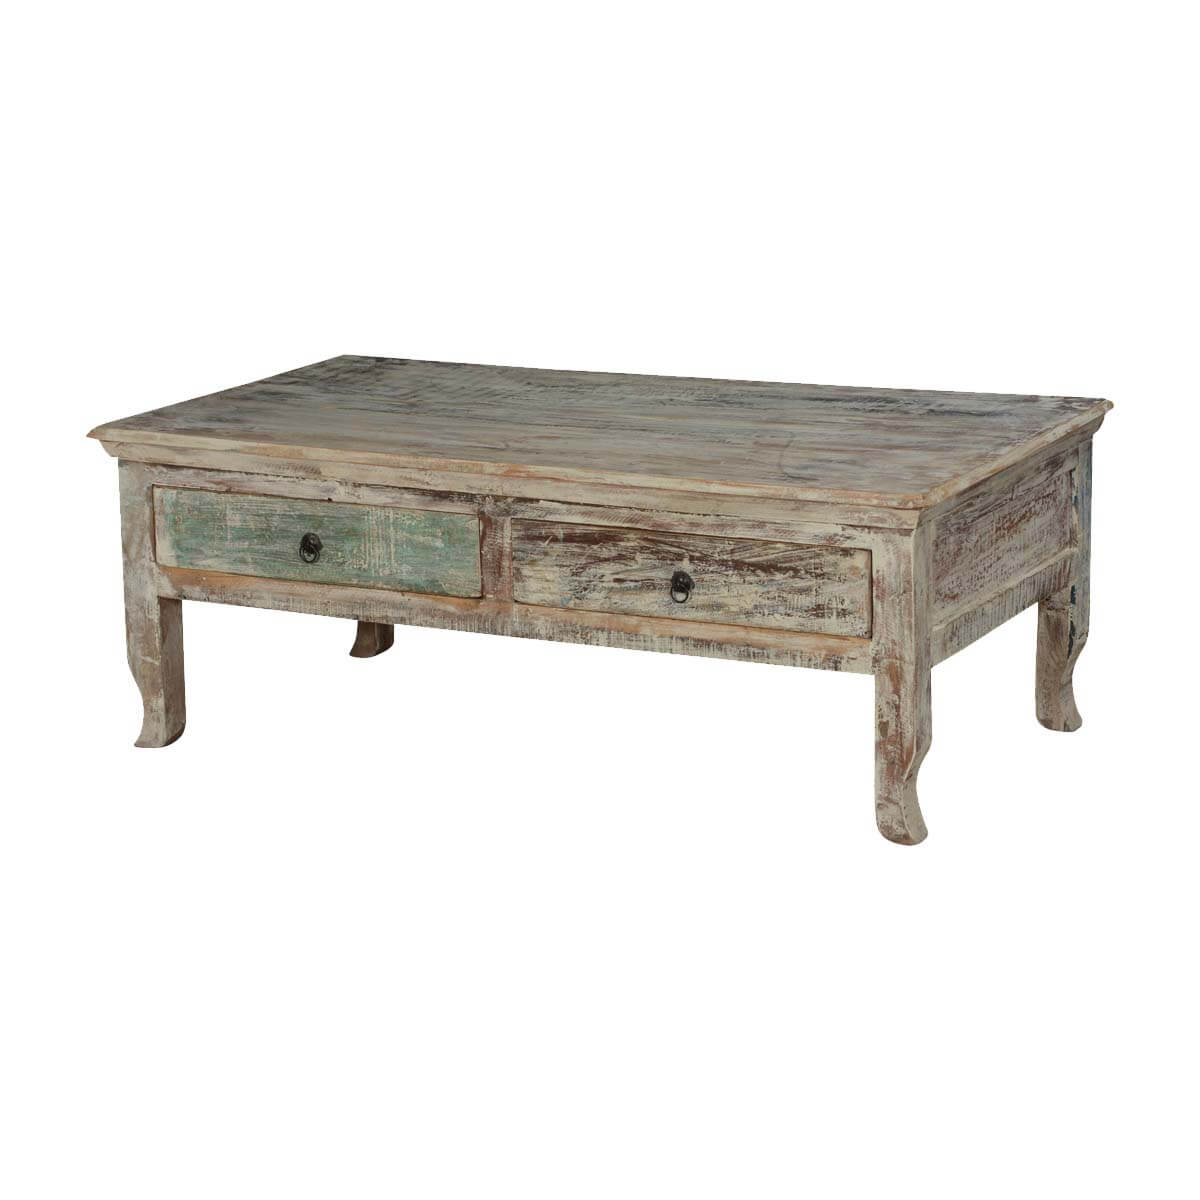 Glomorous Winter Storm Reclaimed Wood Coffee Table W Drawers Reclaimed Wood Coffee Table Set Reclaimed Wood Coffee Table Ago houzz-03 Reclaimed Wood Coffee Table